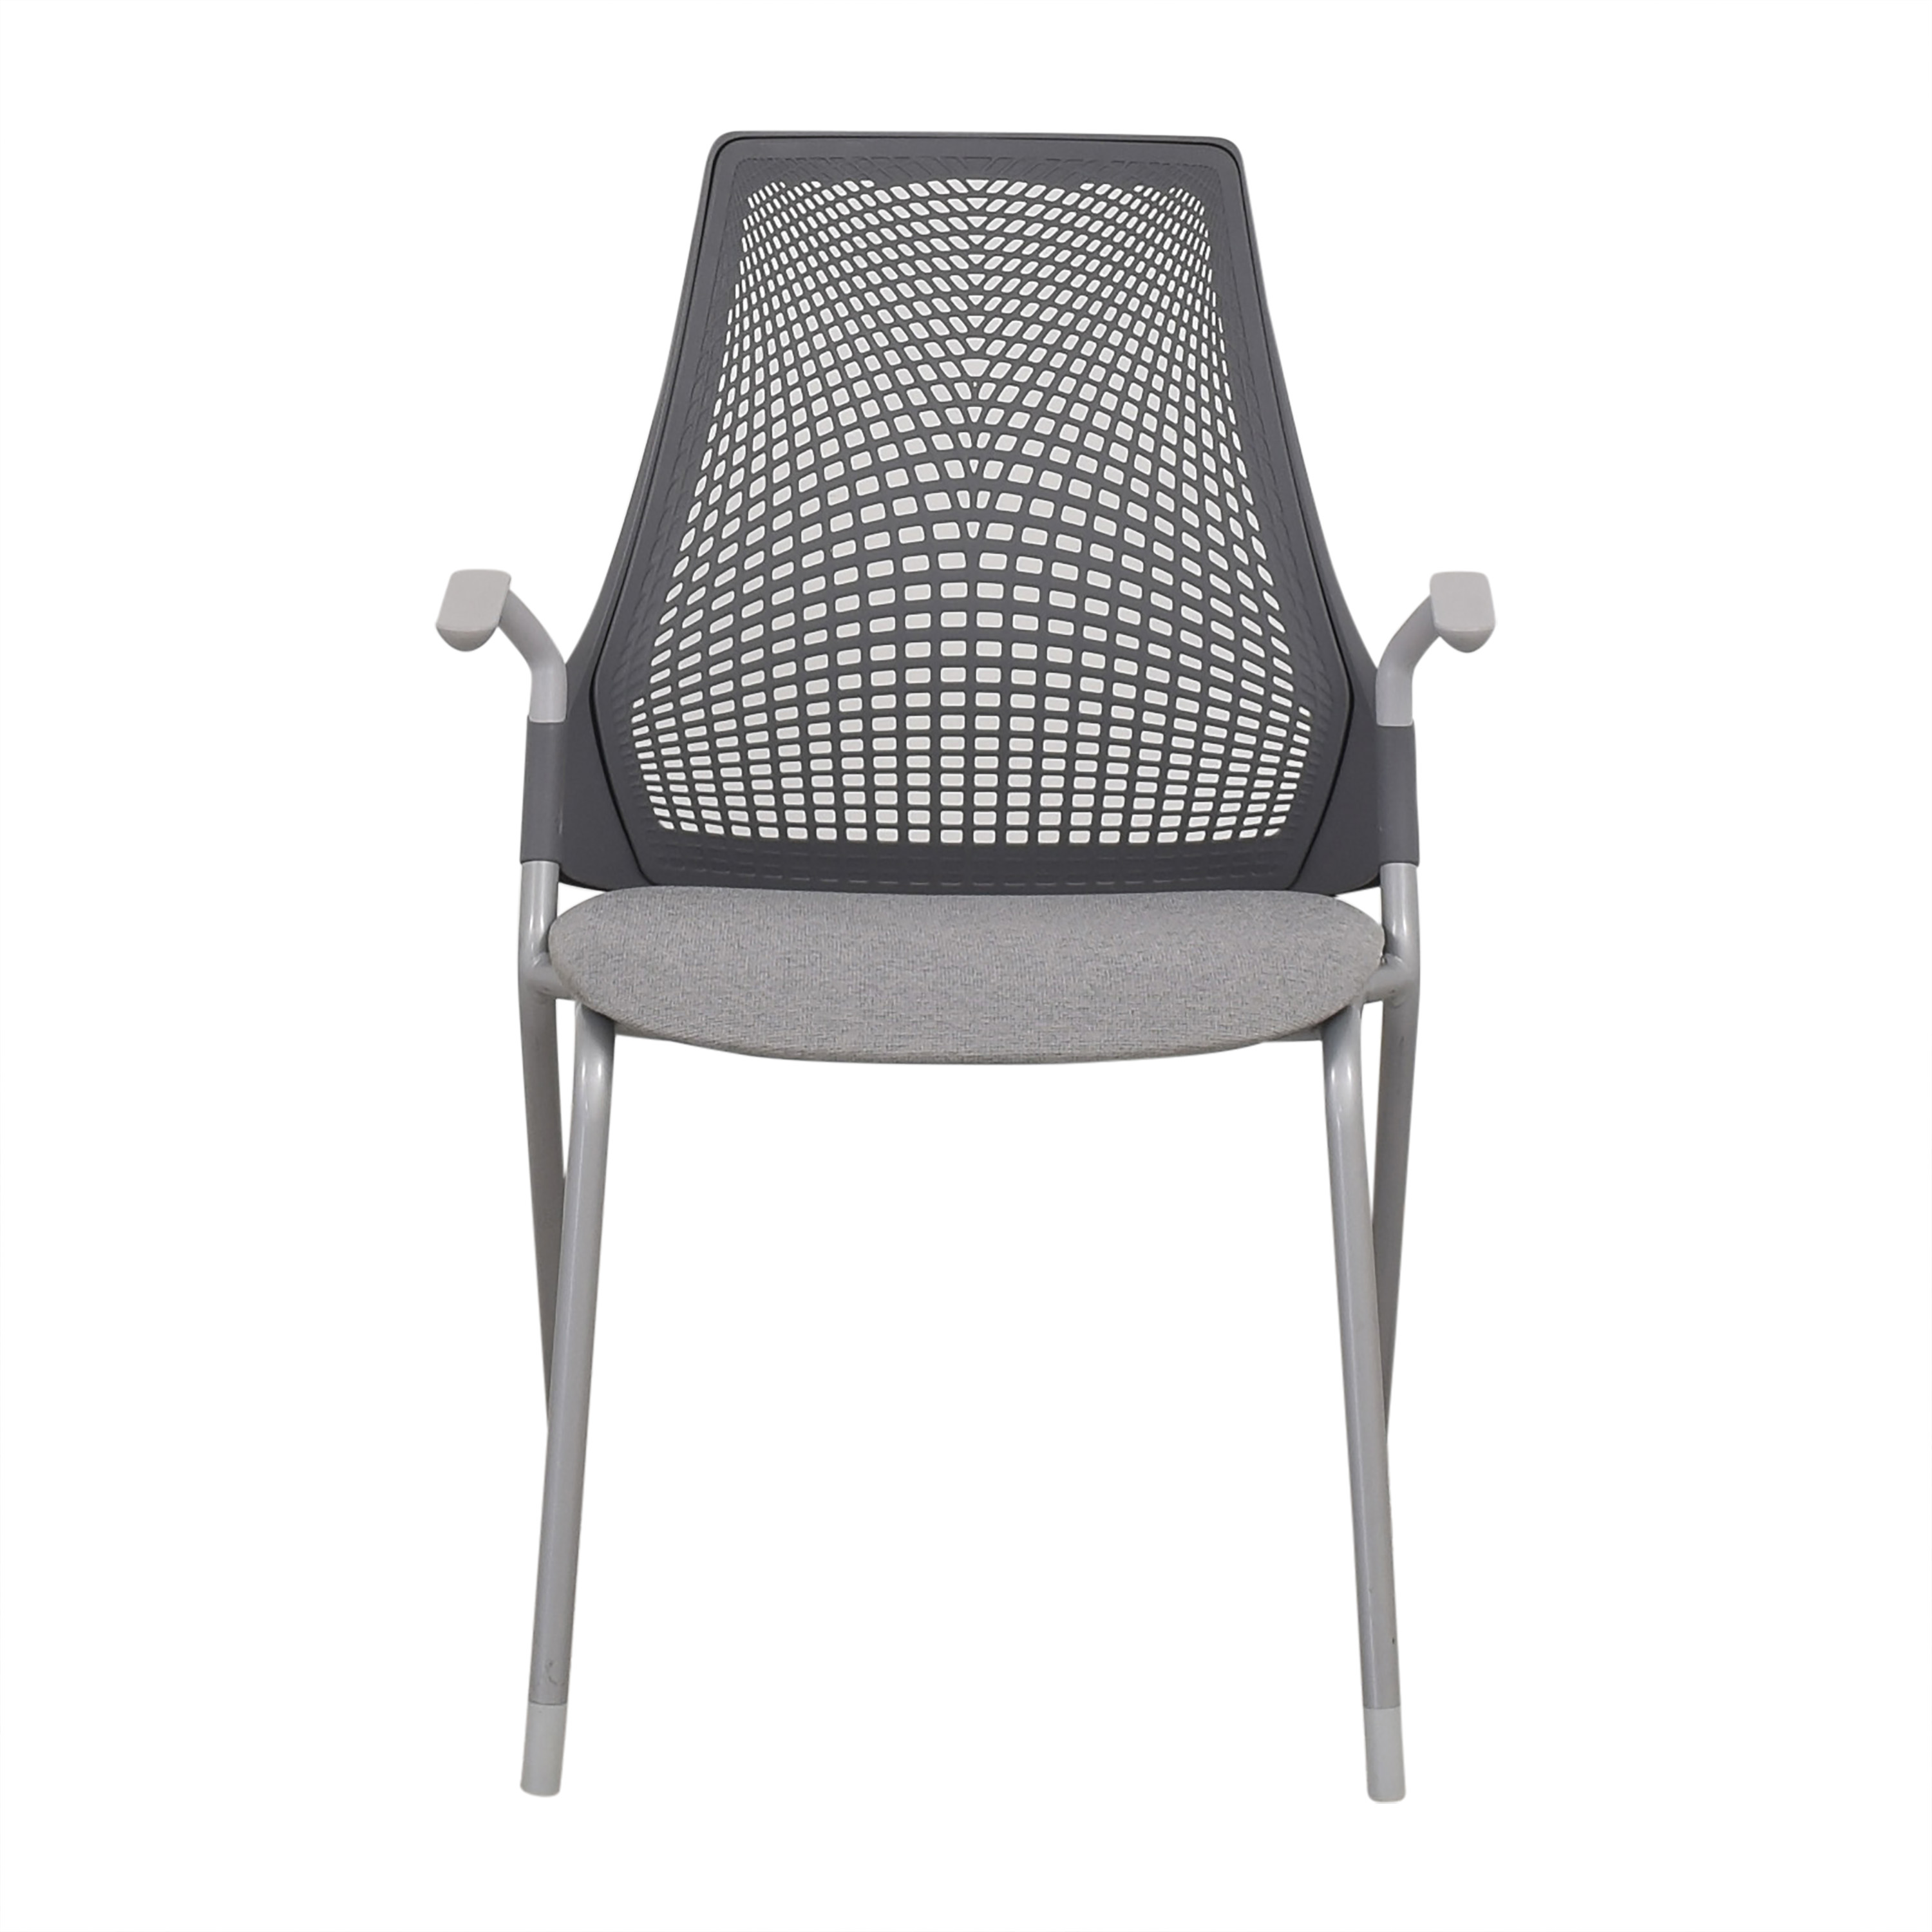 Herman Miller Herman Miller Sayl Side Chair ma